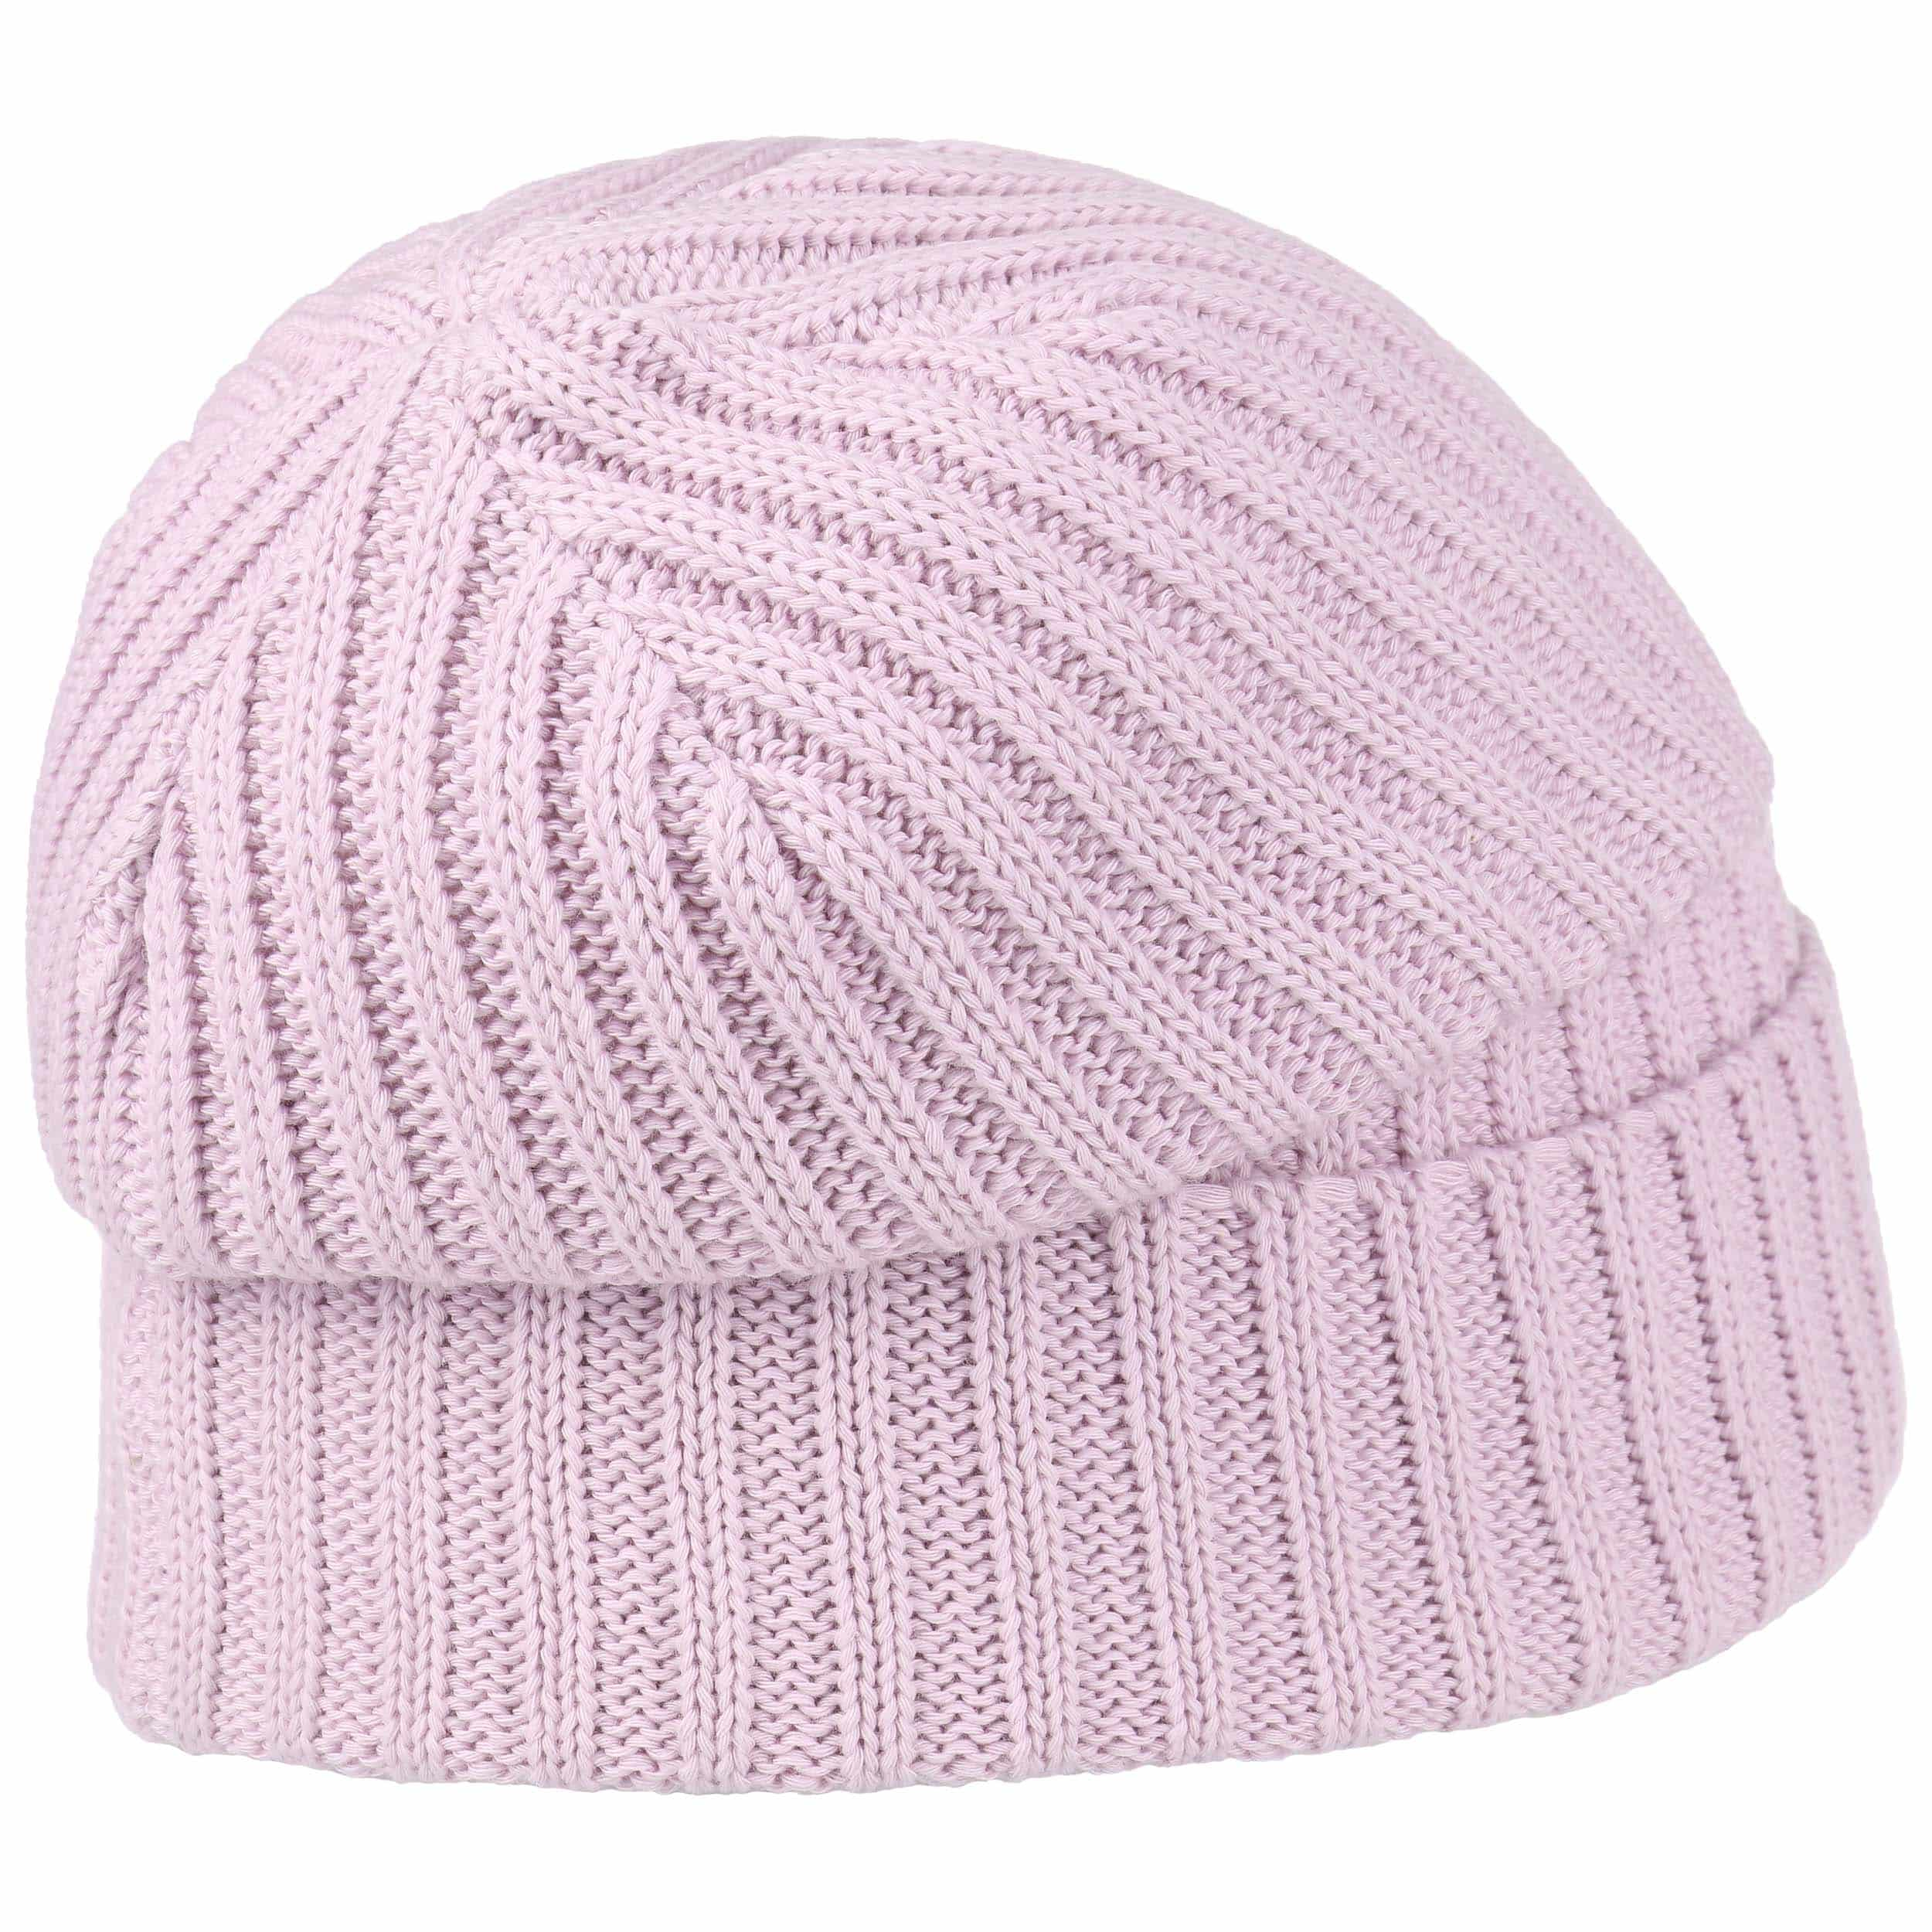 Ribbed Beanie in Pink - Pink Levi's DQ0PX2Jj